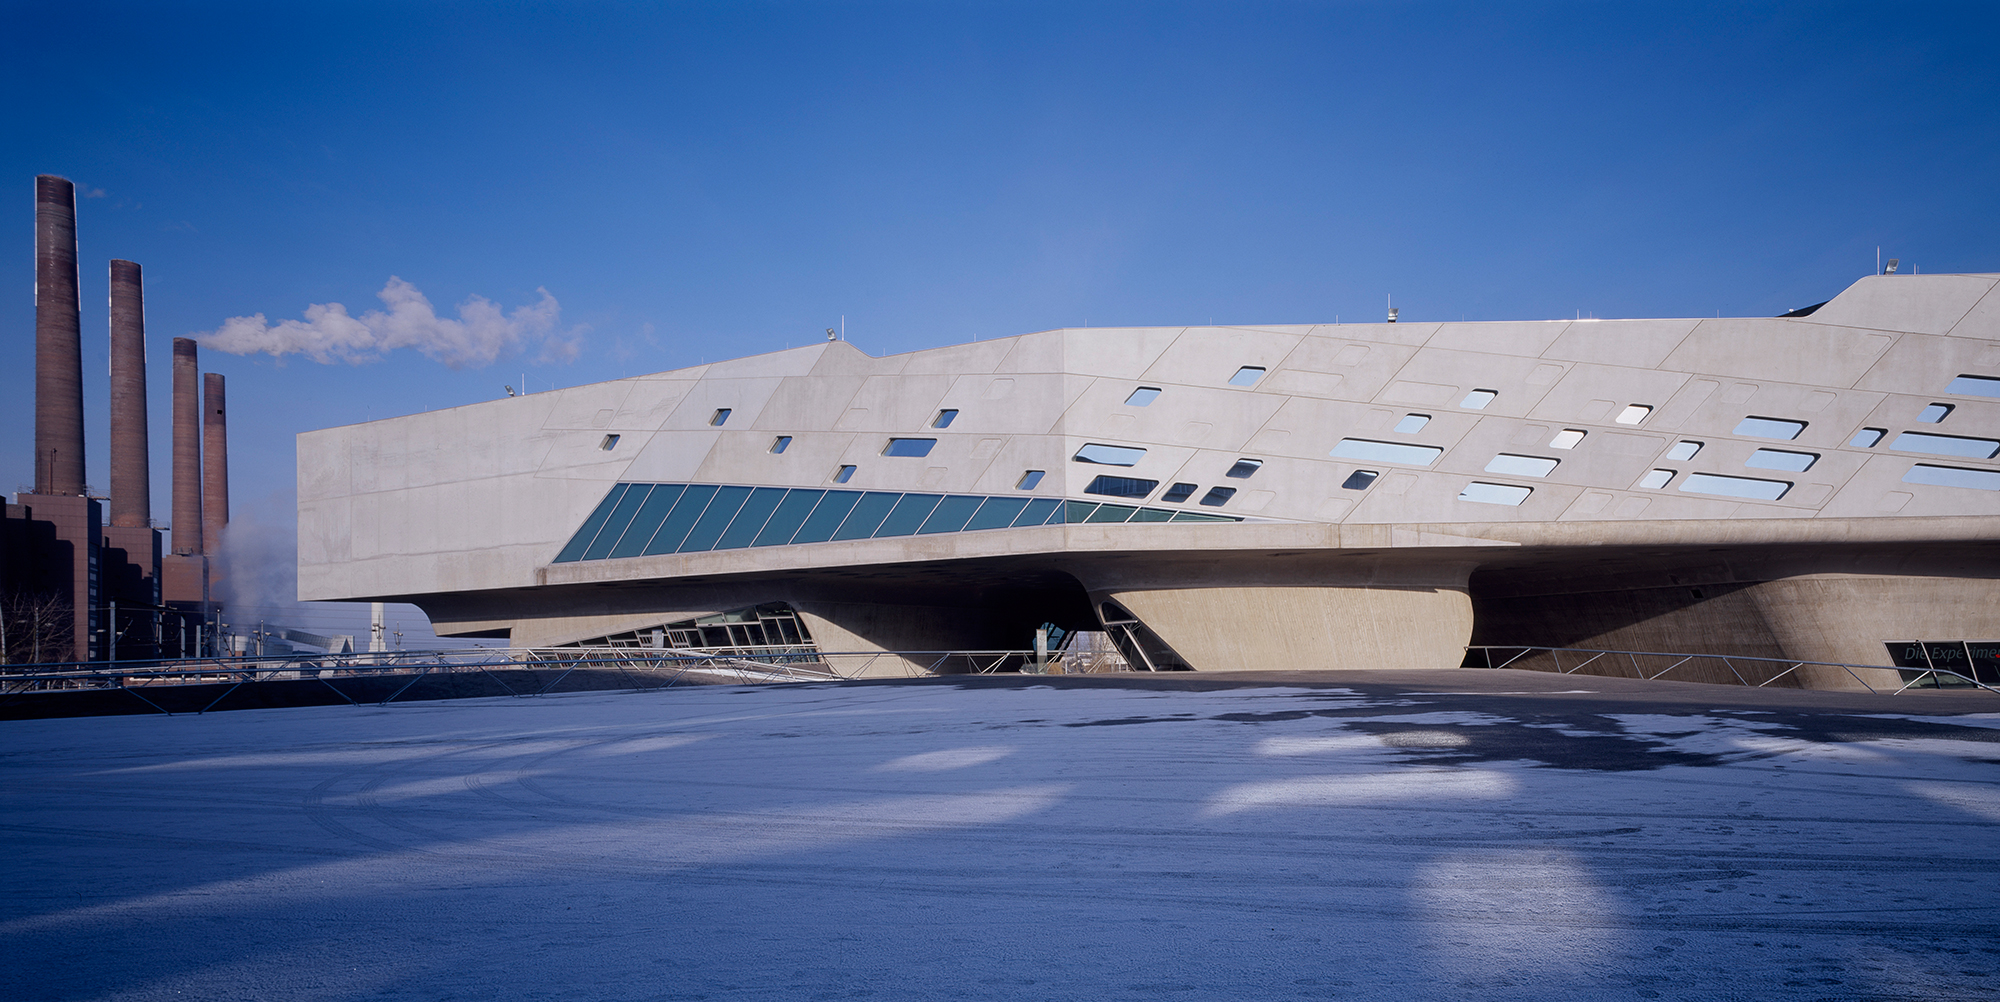 The Phæno Science Center in Wolfsburg, Germany.